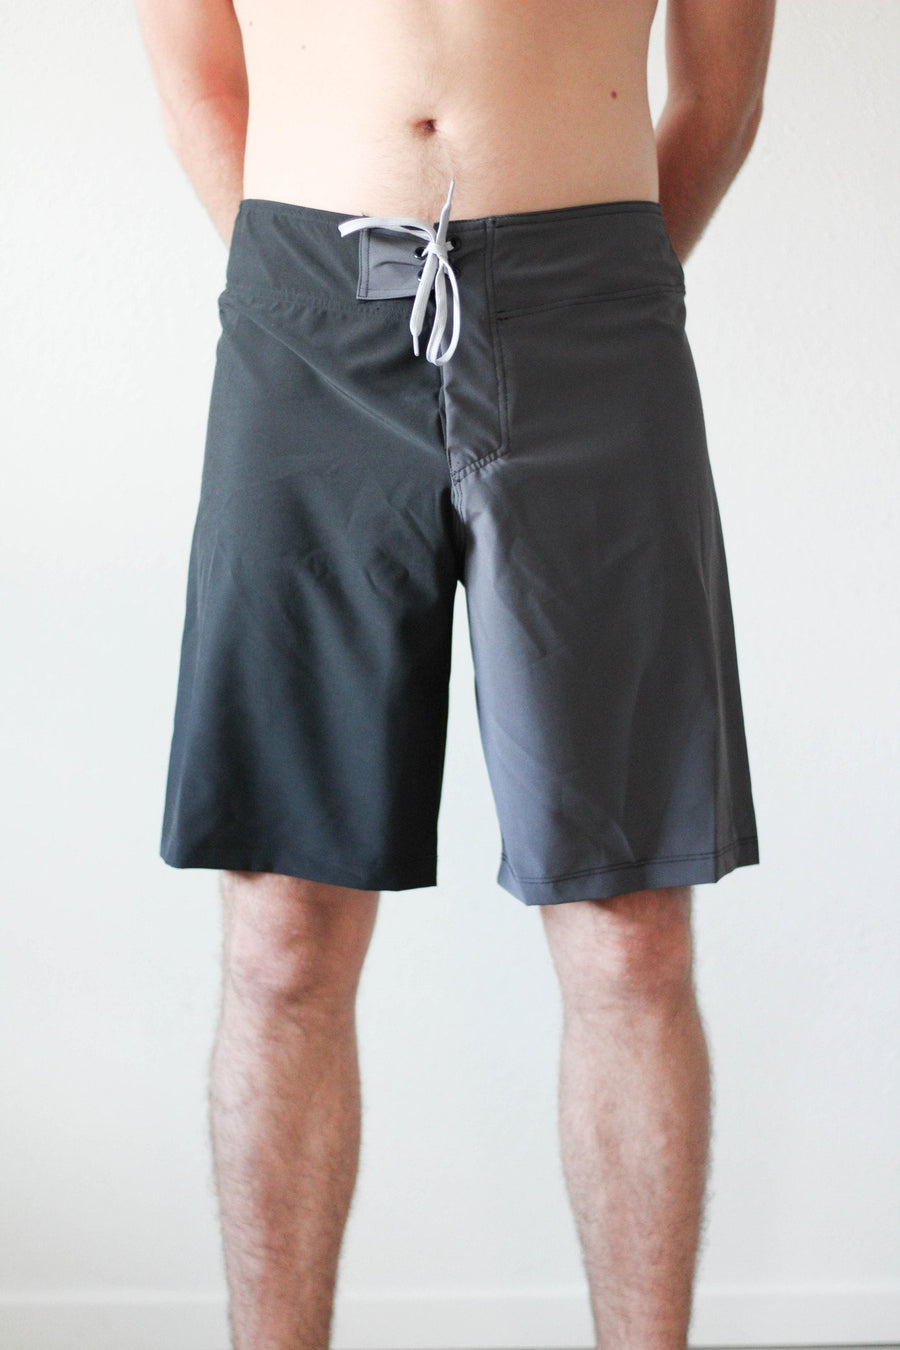 Low Tide Boardshort - L A G O O N DESIGNS